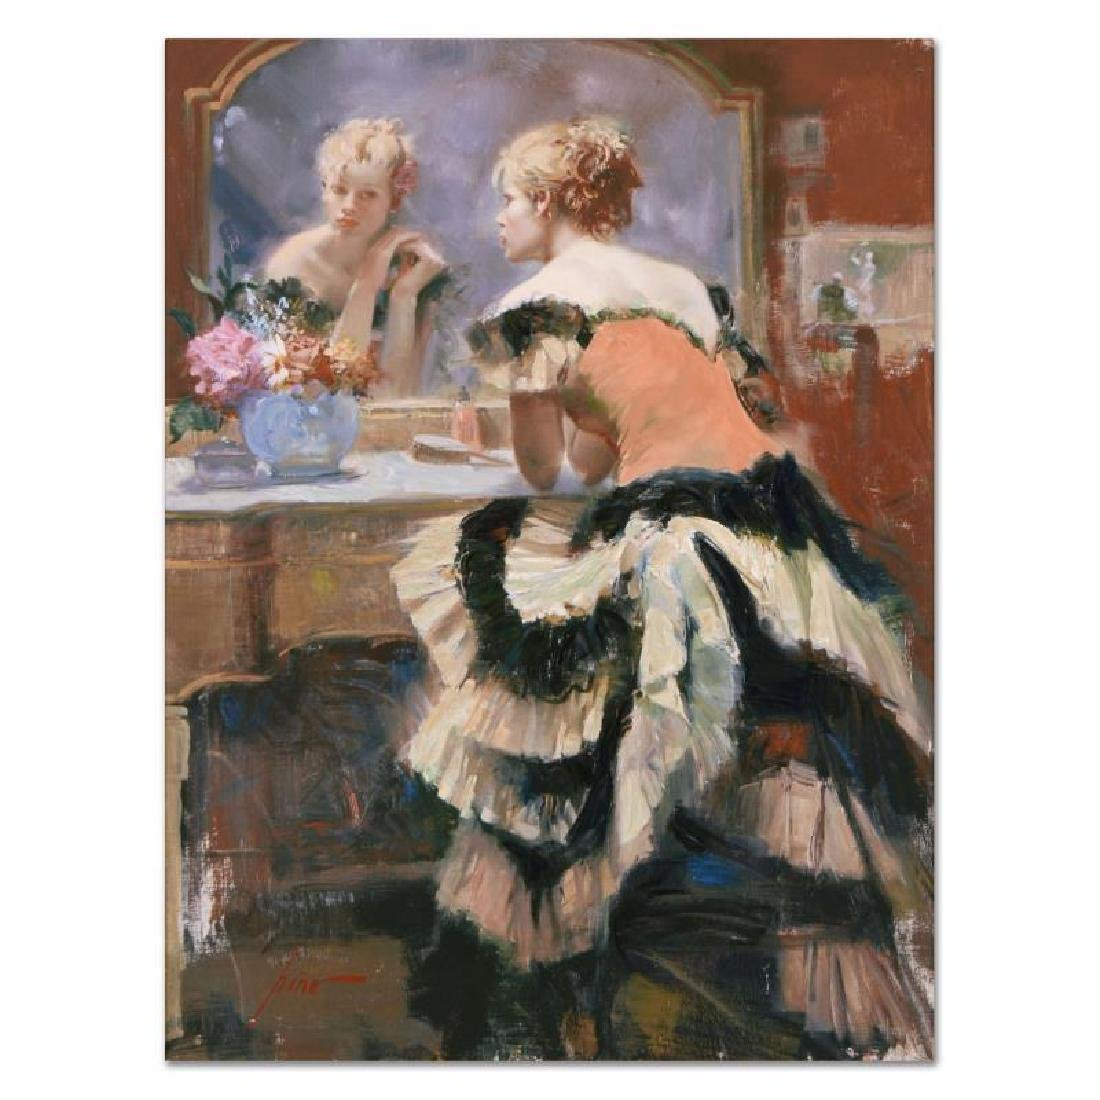 Before the Show by Pino (1939-2010)